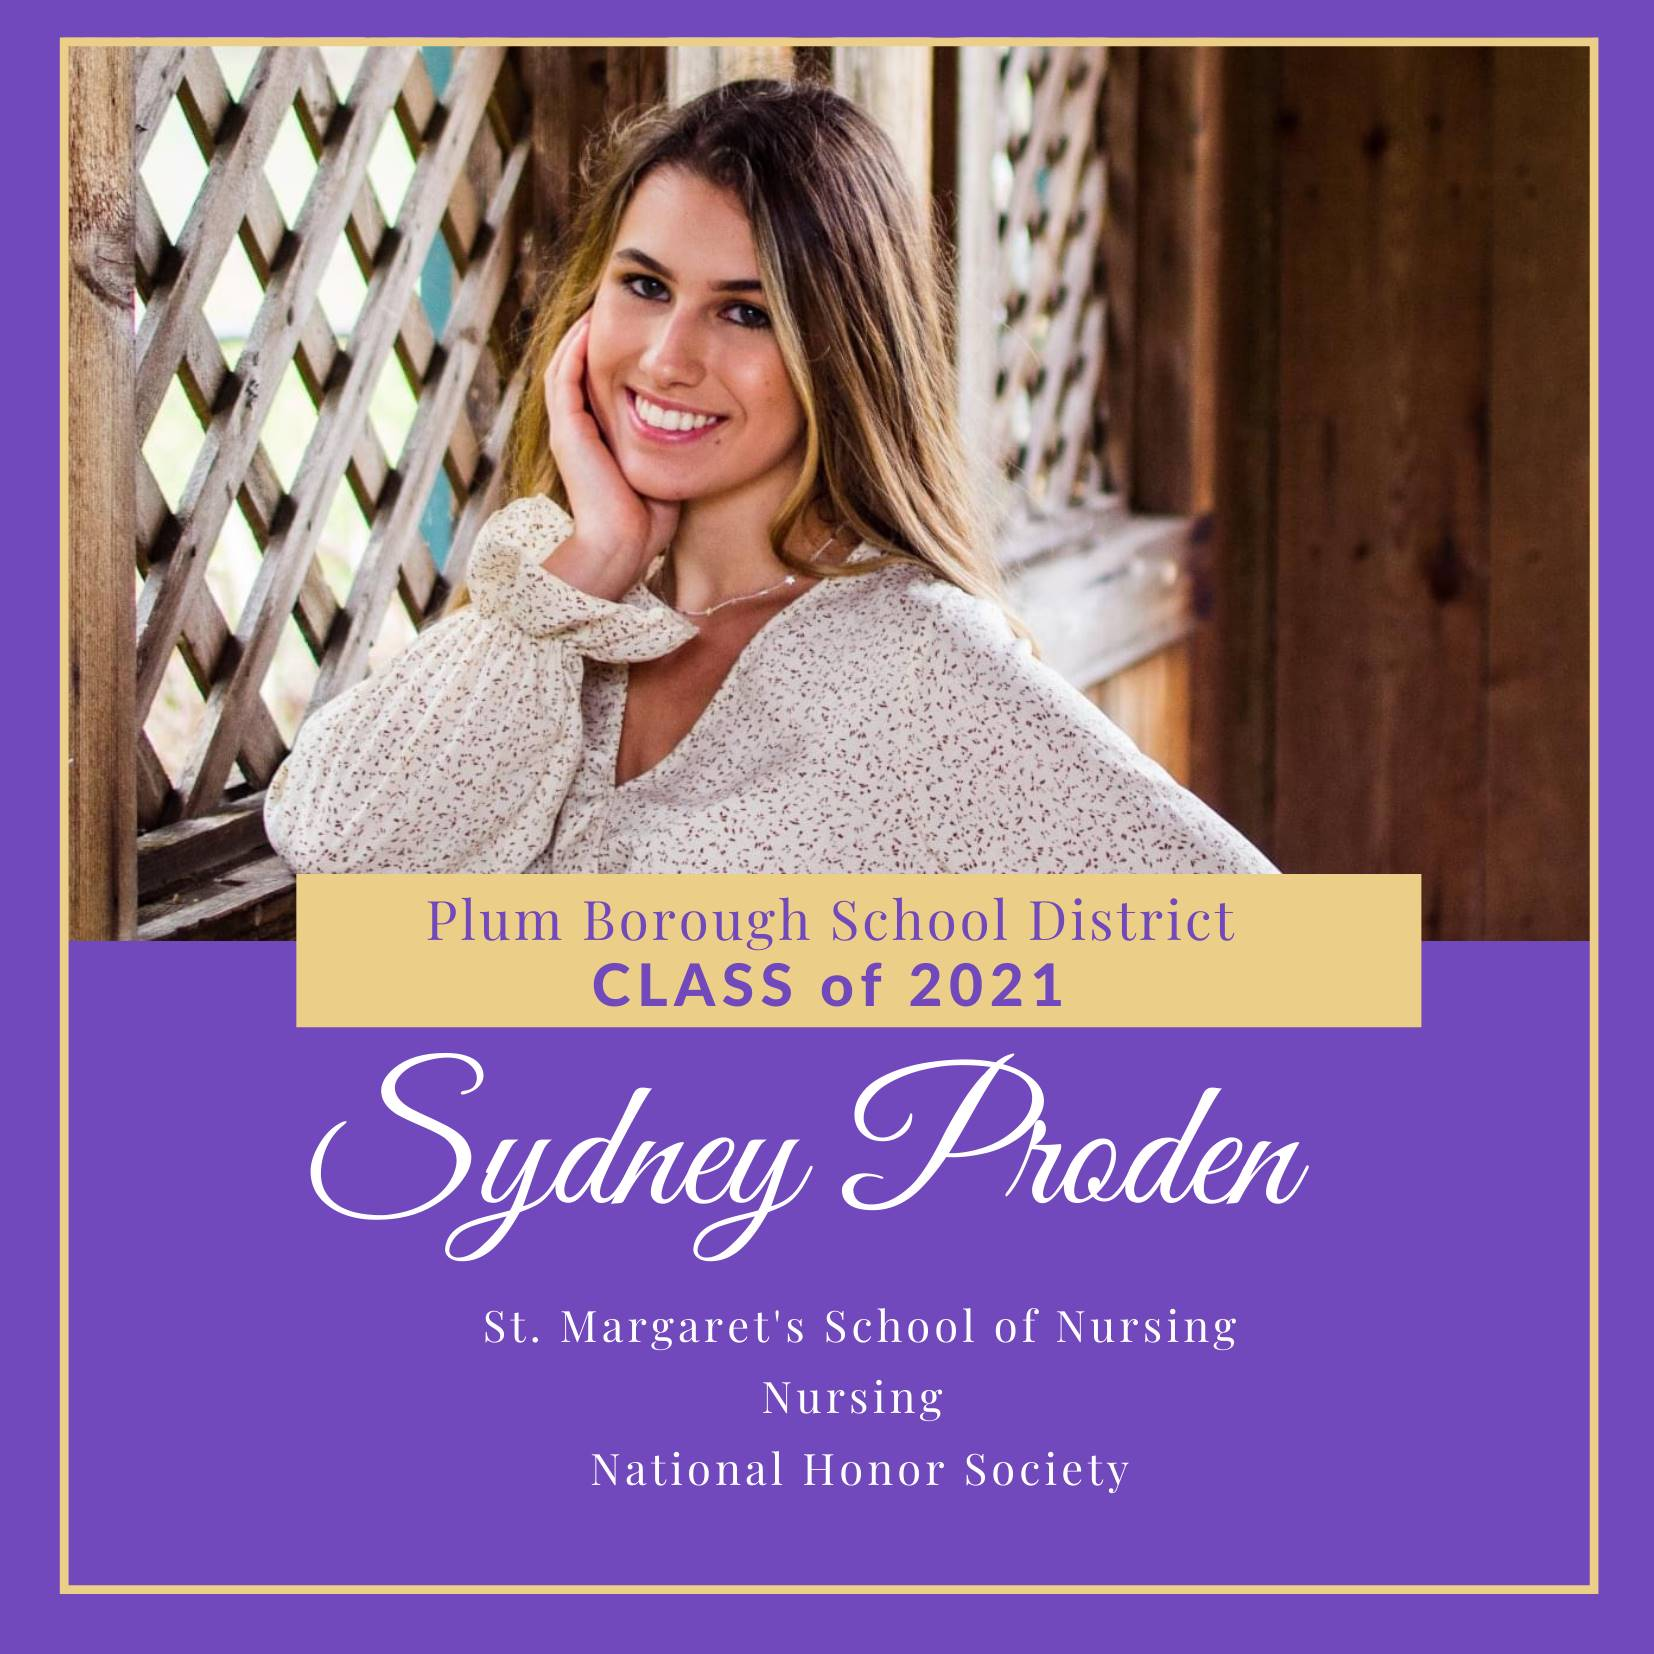 Congratulations to Sydney Proden, Class of 2021!